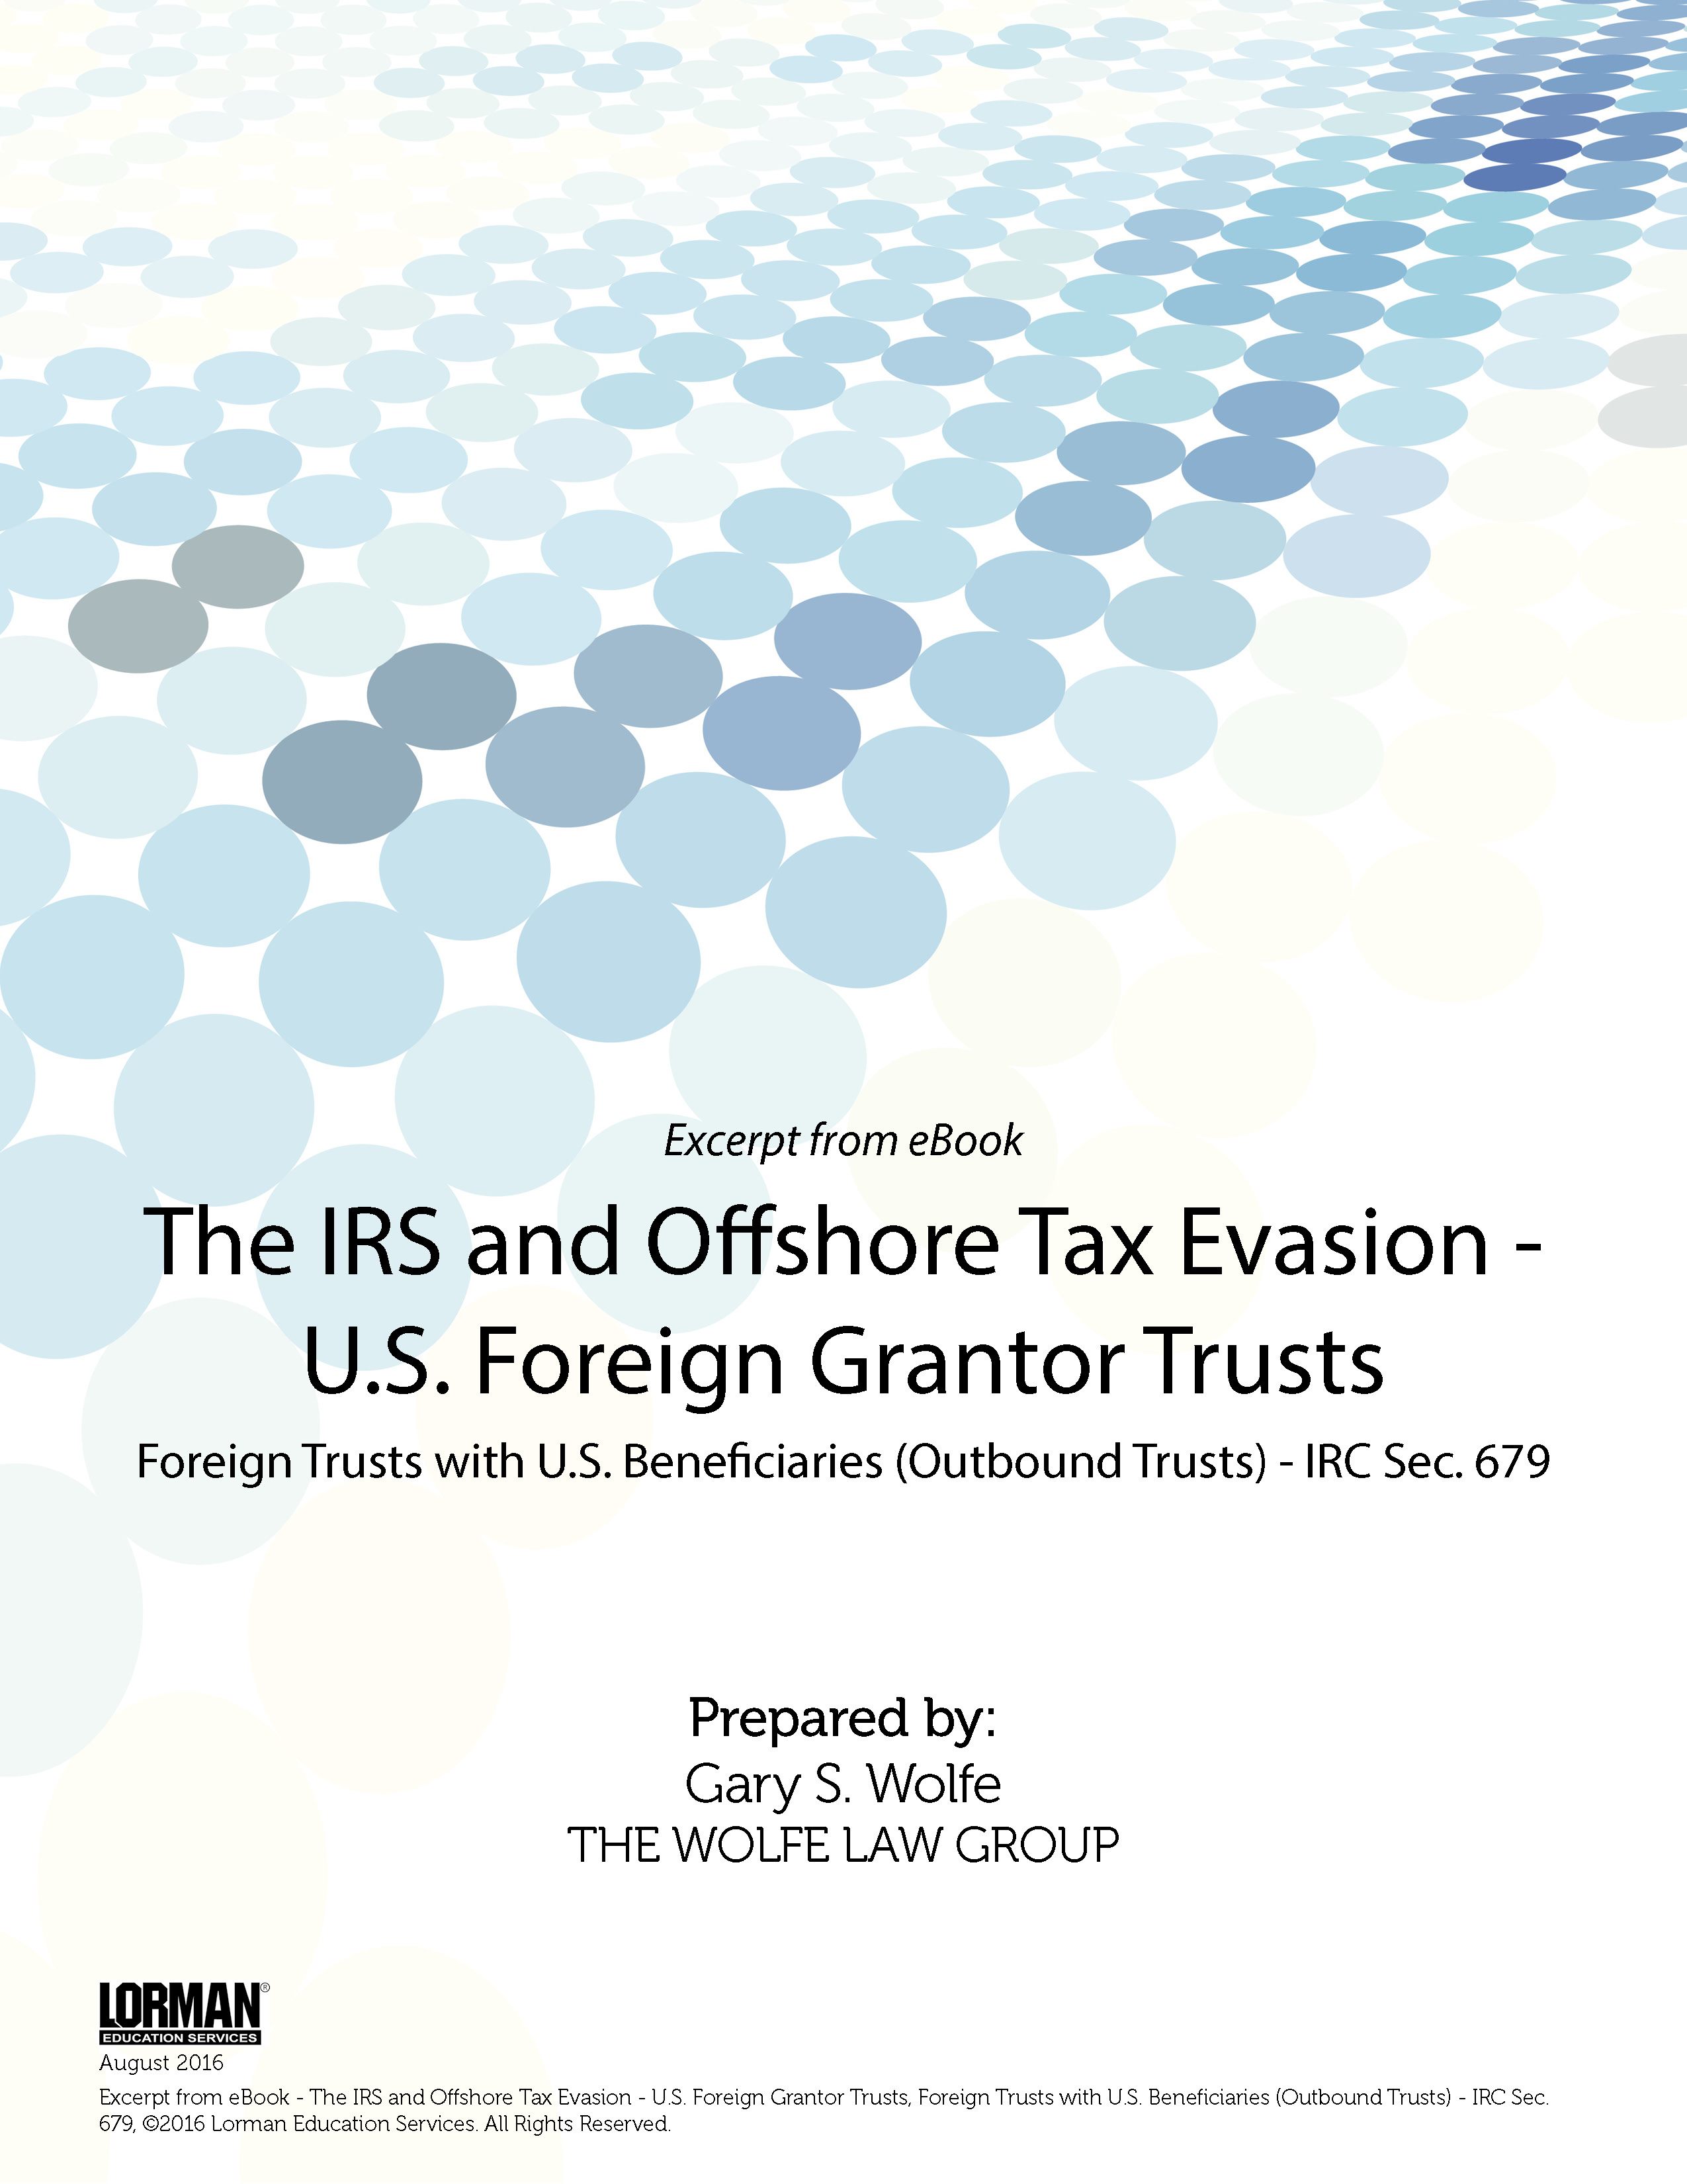 The IRS and Offshore Tax Evasion - U.S. Foreign Grantor Trusts: Foreign Trusts with U.S. Beneficiaries (Outbound Trusts) - IRC Sec. 679